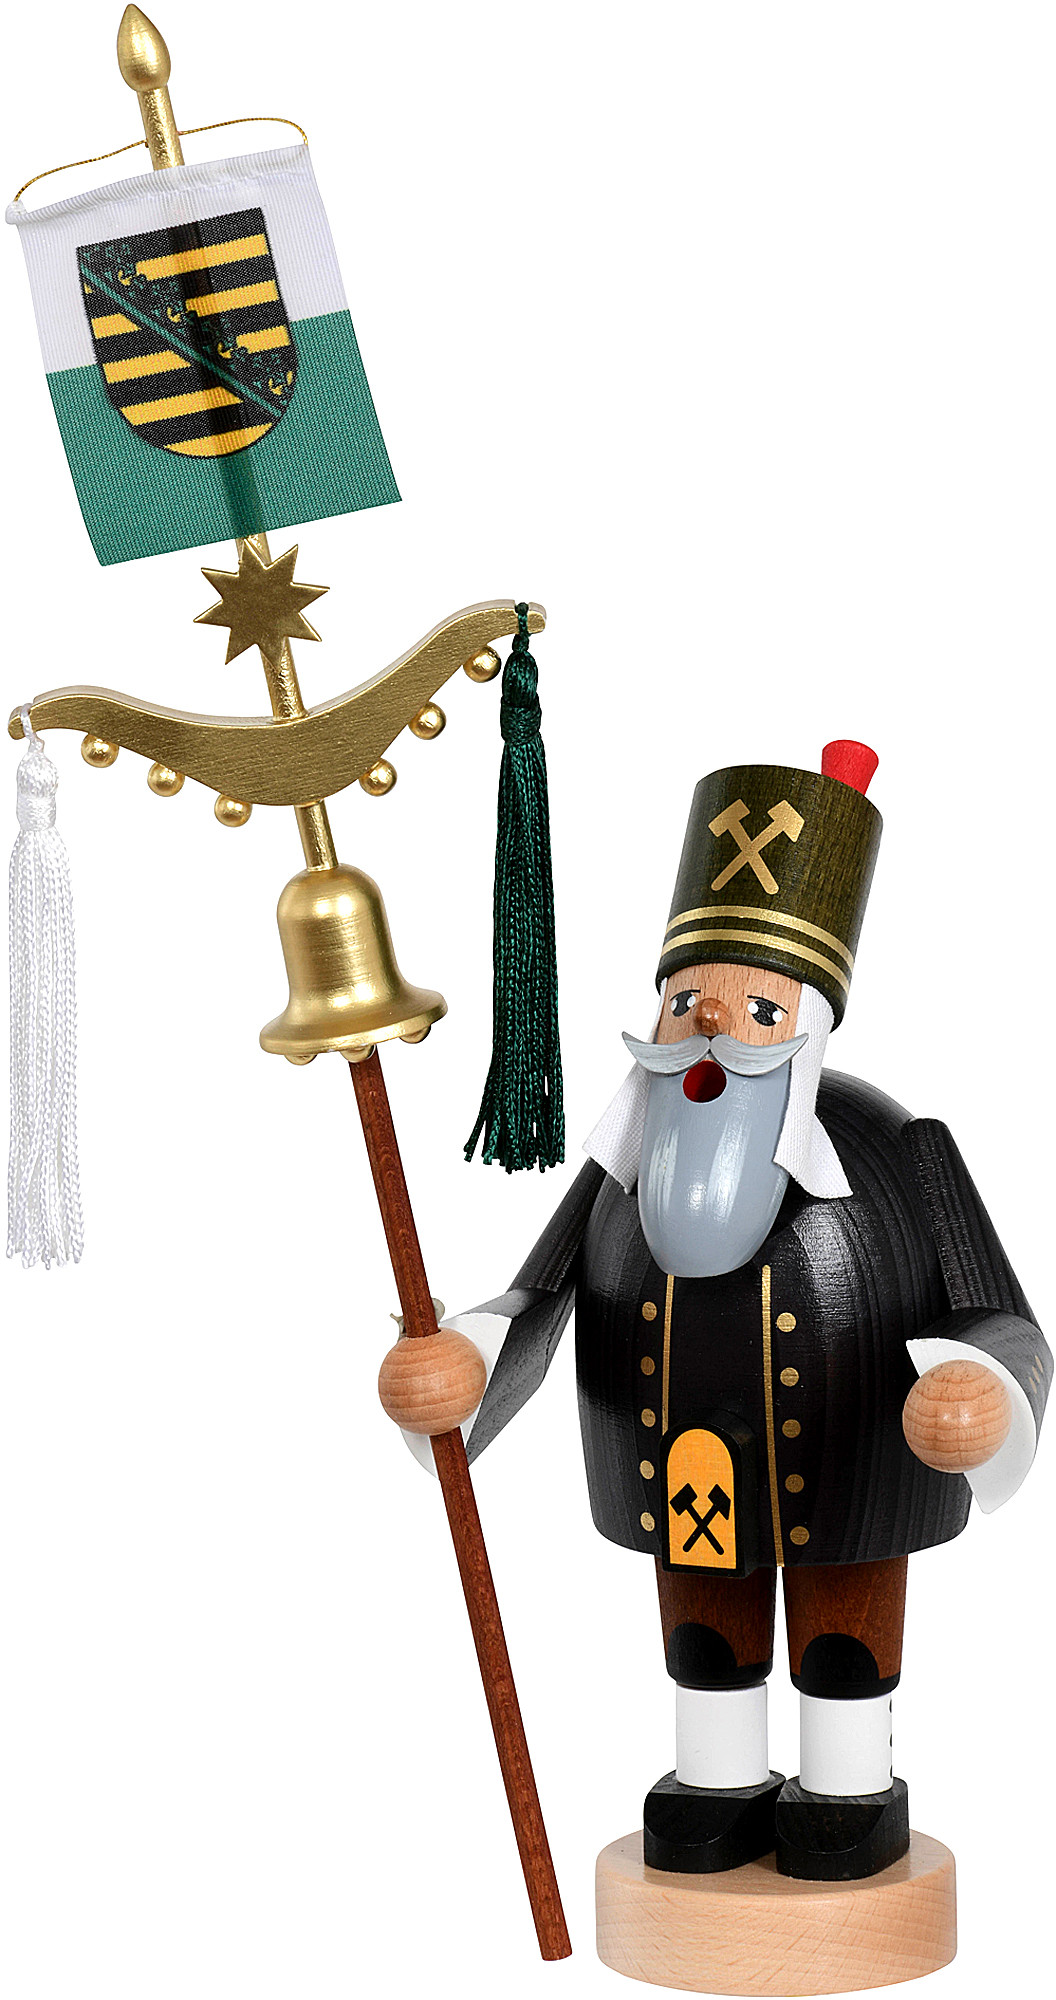 incense smoker, miner with Turkish crescent - The Bearded Men